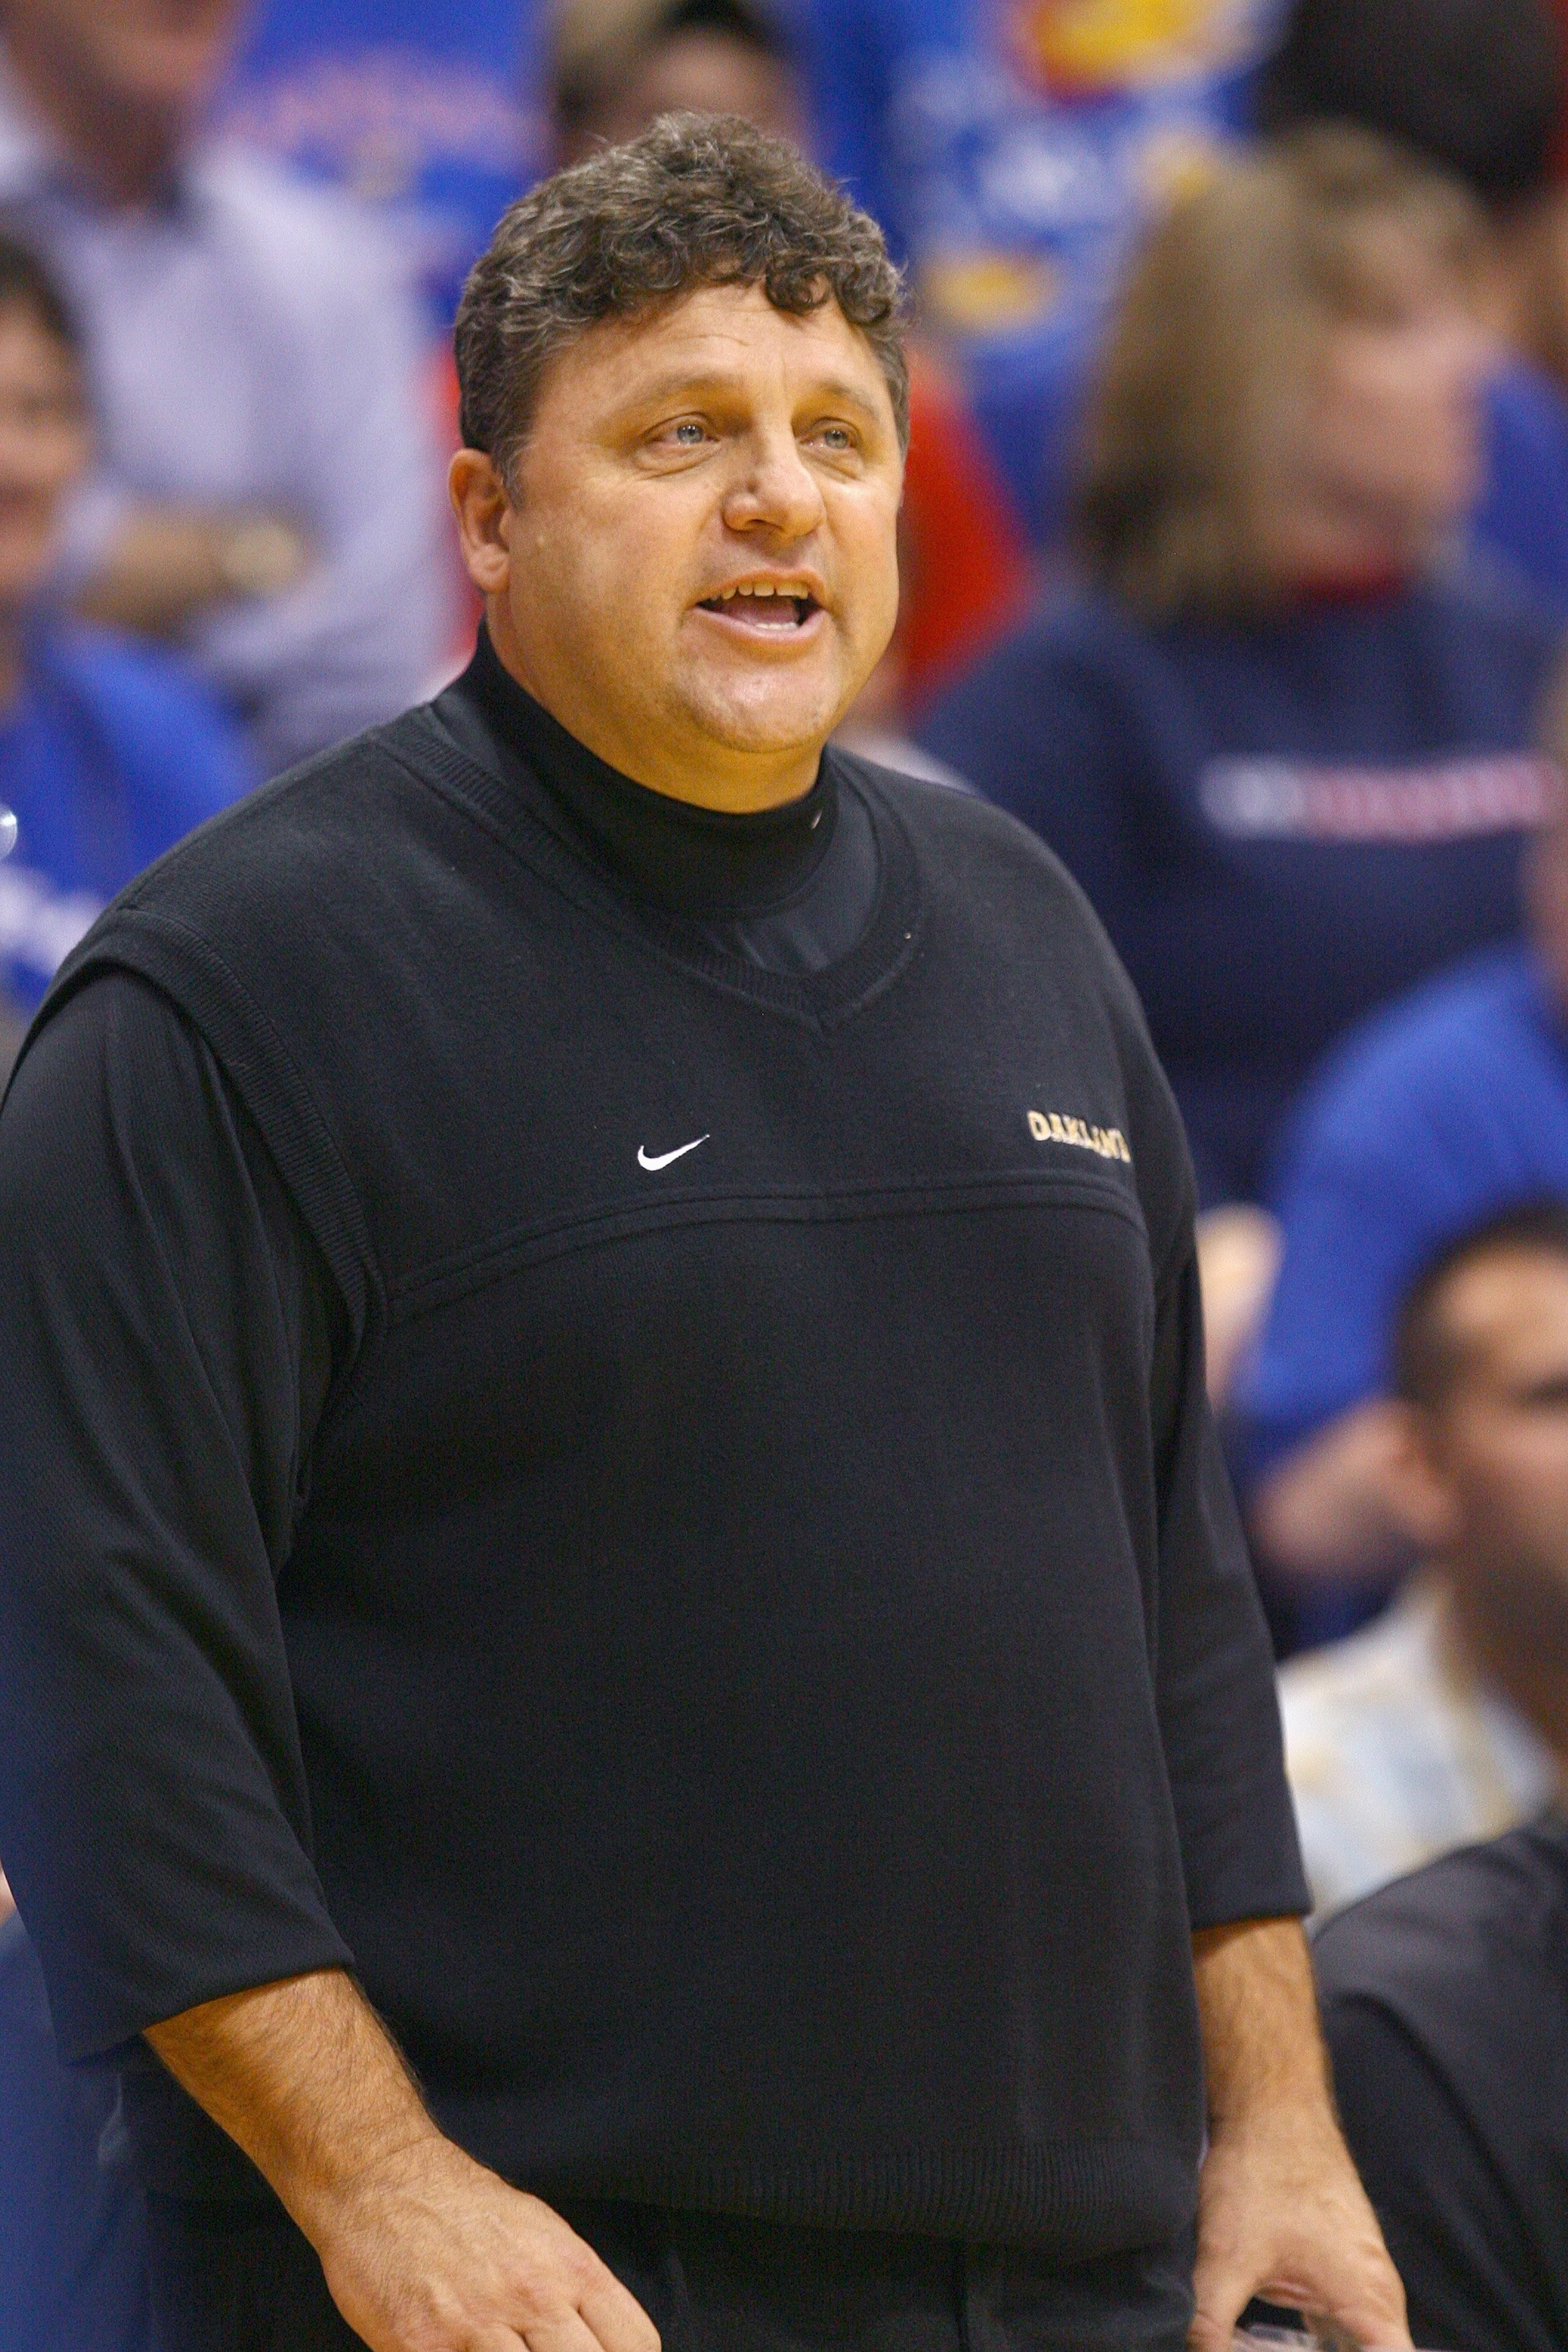 LAWRENCE, KS - NOVEMBER 25:  Head coach Greg Kampeof the Oakland Golden Grizzlies watches the action against the Kansas Jayhawks on November 25, 2009 at Allen Fieldhouse in Lawrence, Kansas. (Photo by Jamie Squire/Getty Images)